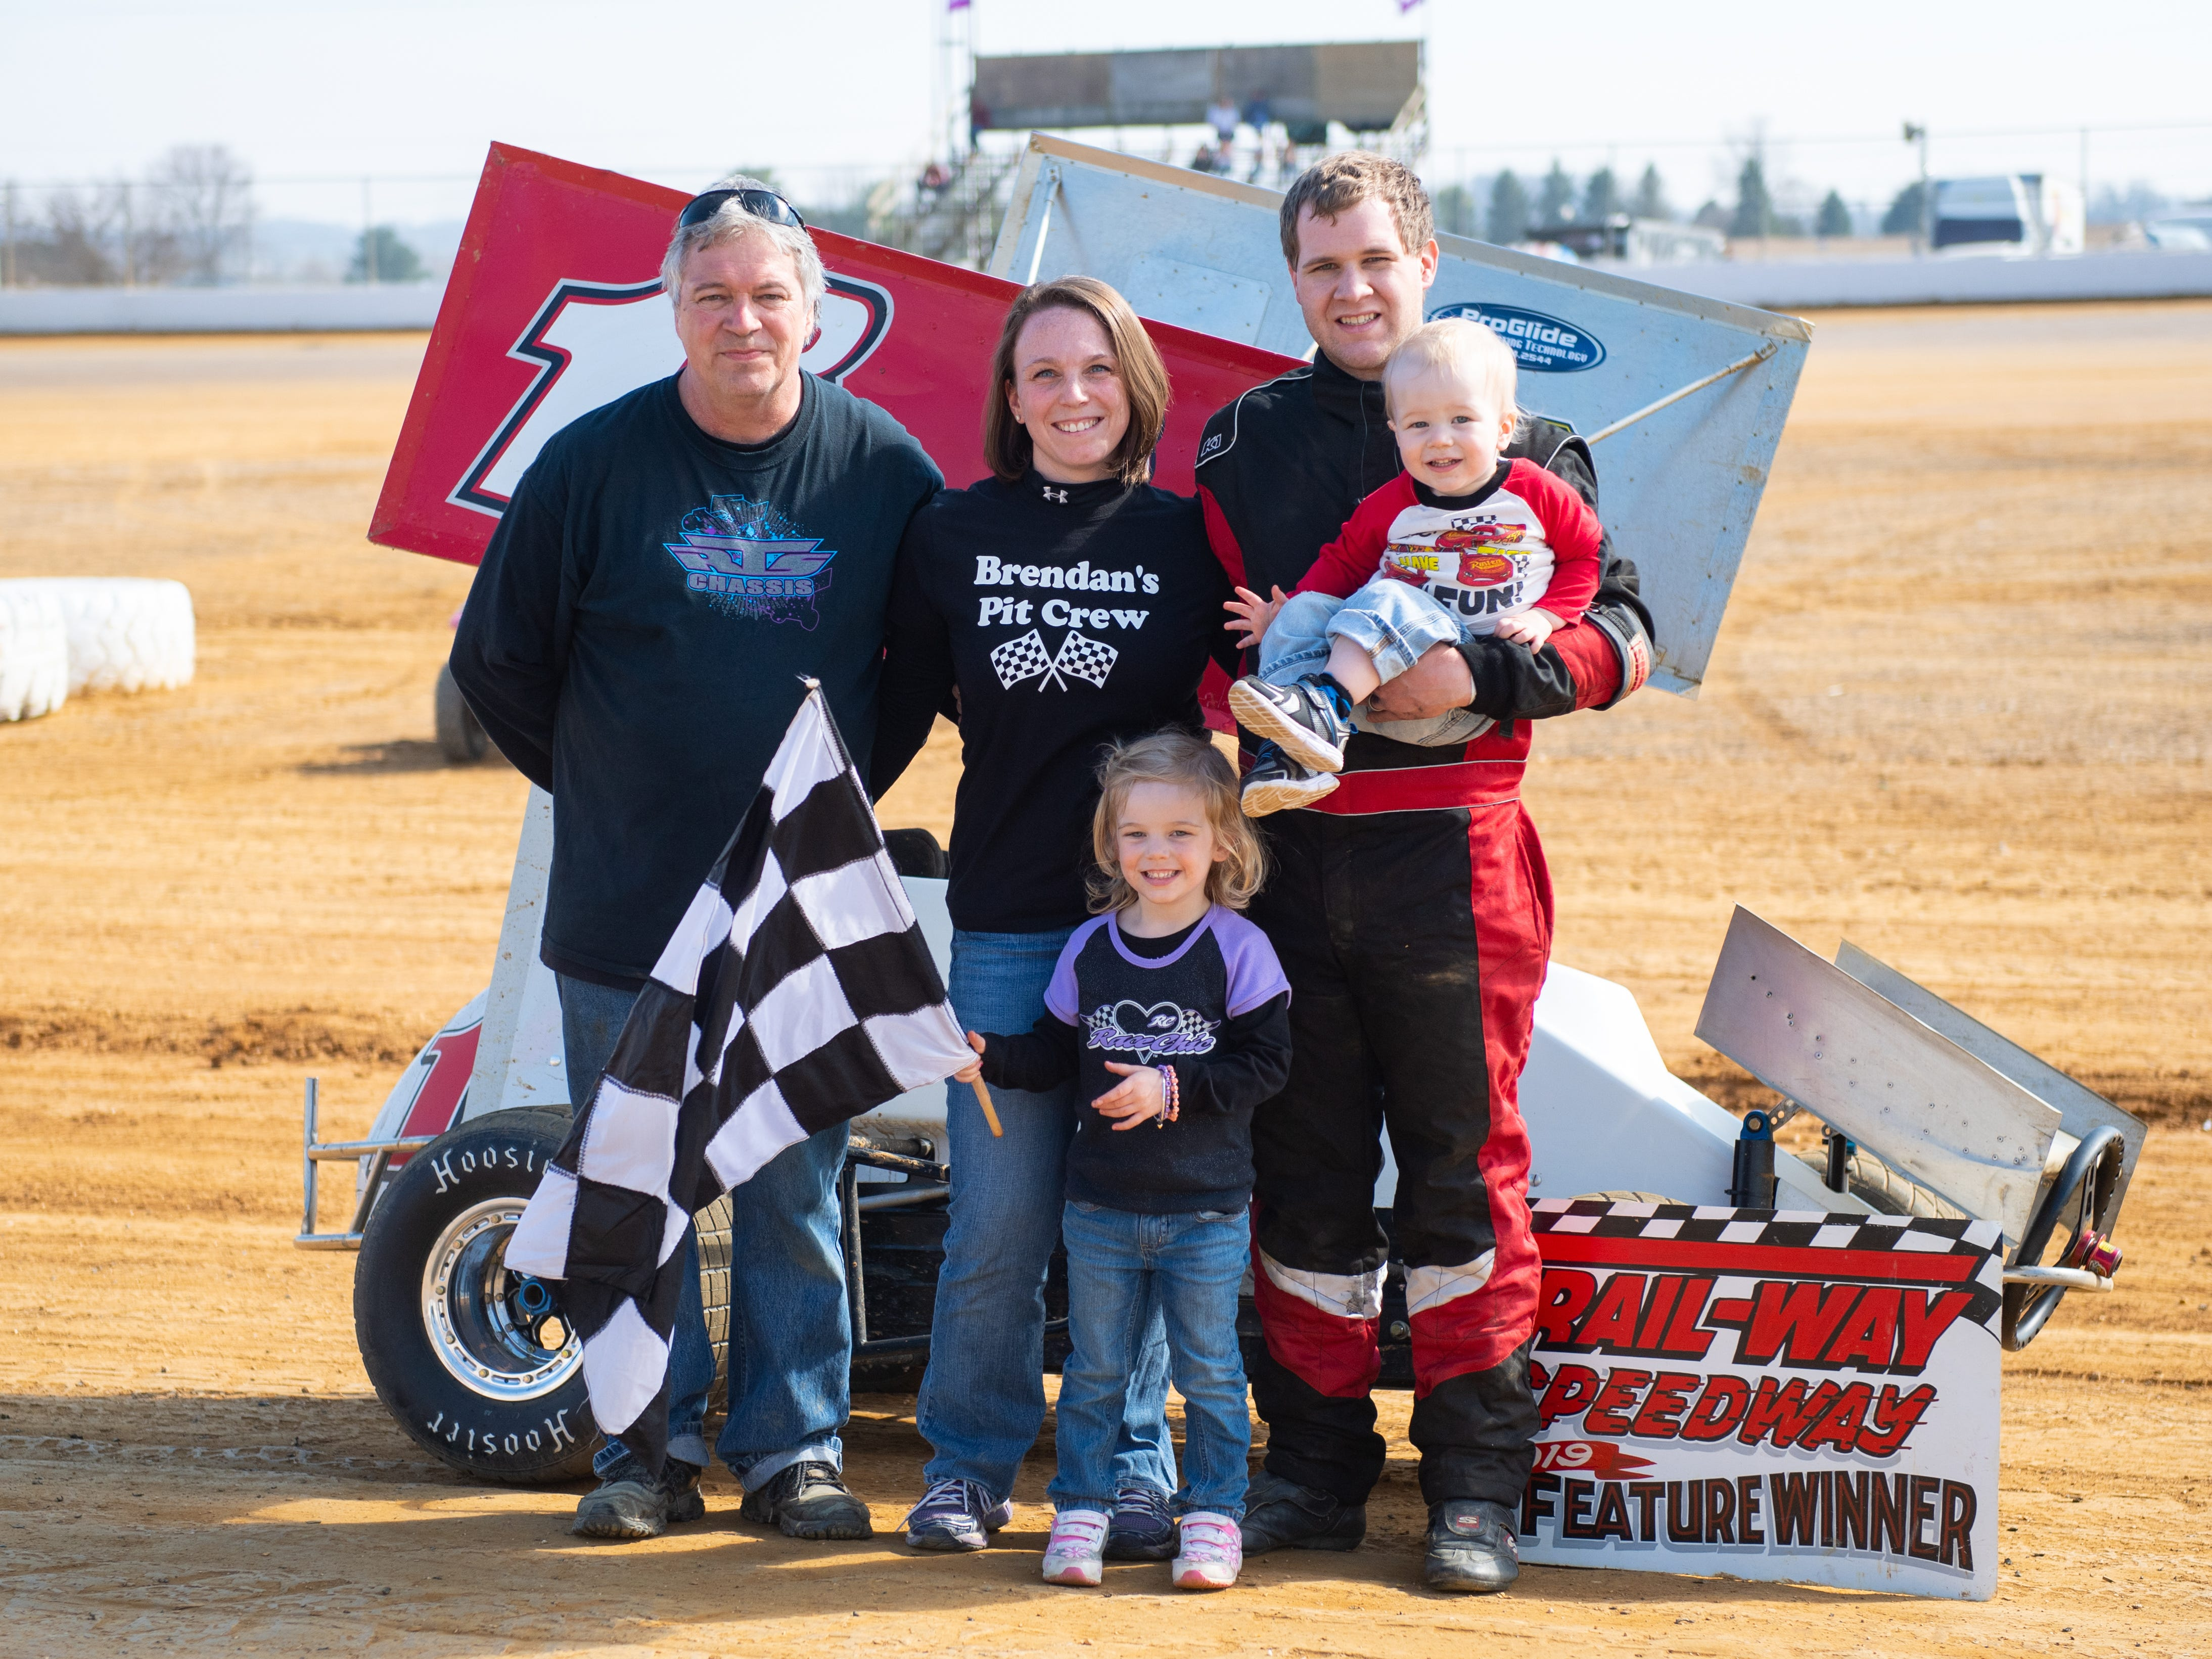 Brent Bull (1B) poses with his family after winning his heat in the 600 Micro Sprints during the Trail-Way Speedway season opener, April 6, 2019.